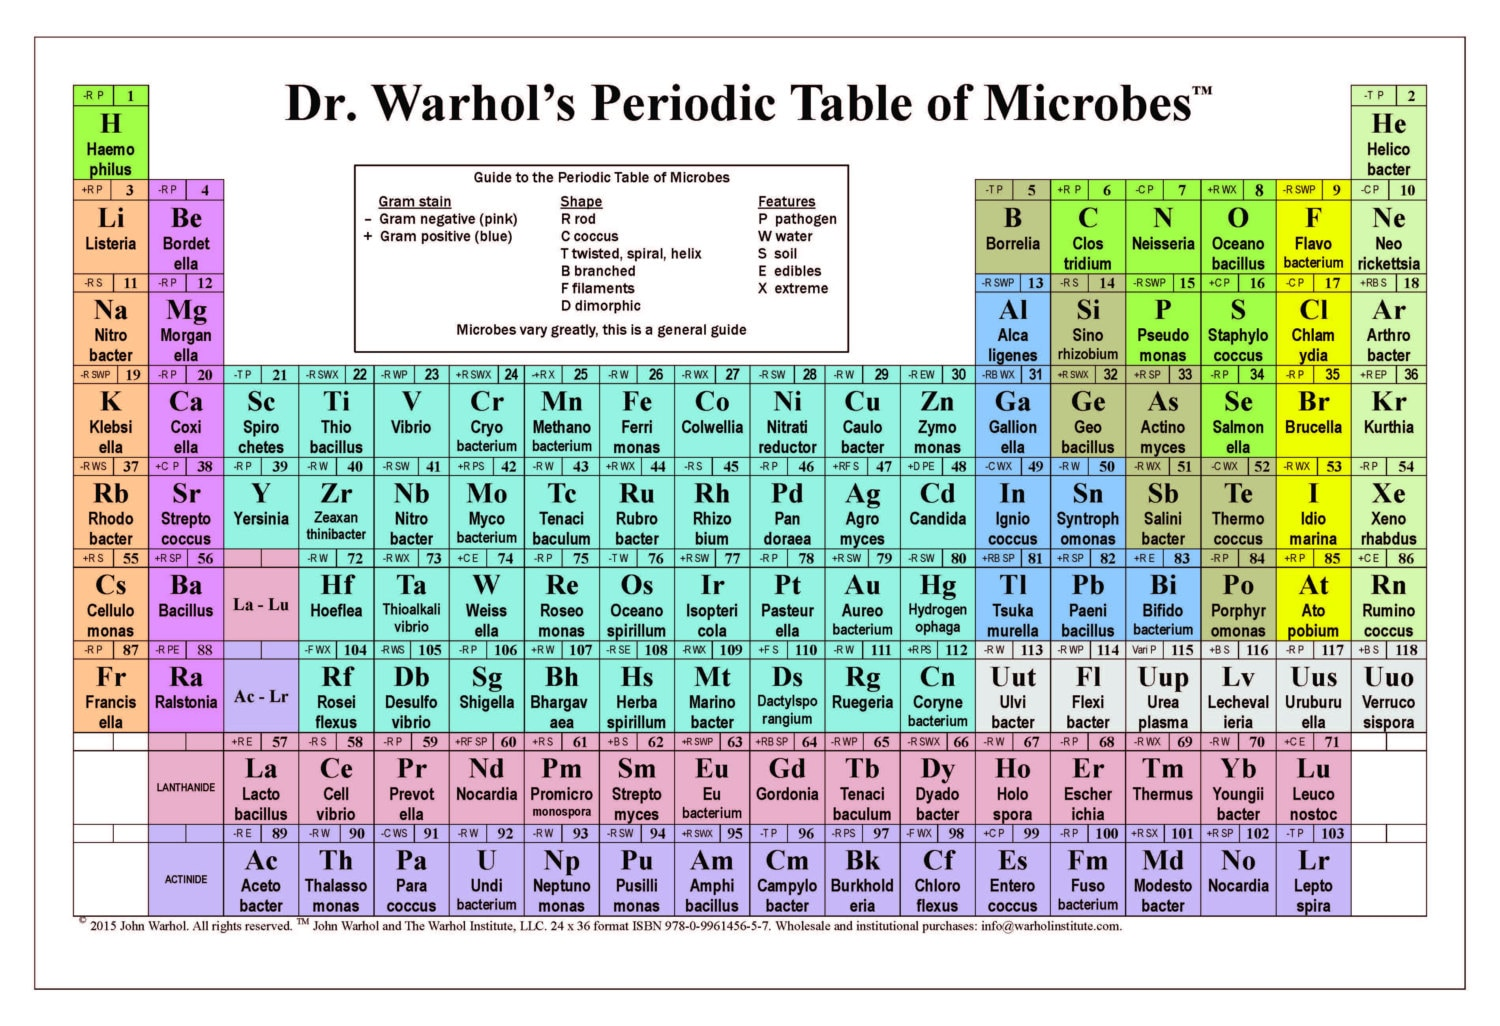 Dr. Warhol\'s Periodic Table of Microbes | Etsy